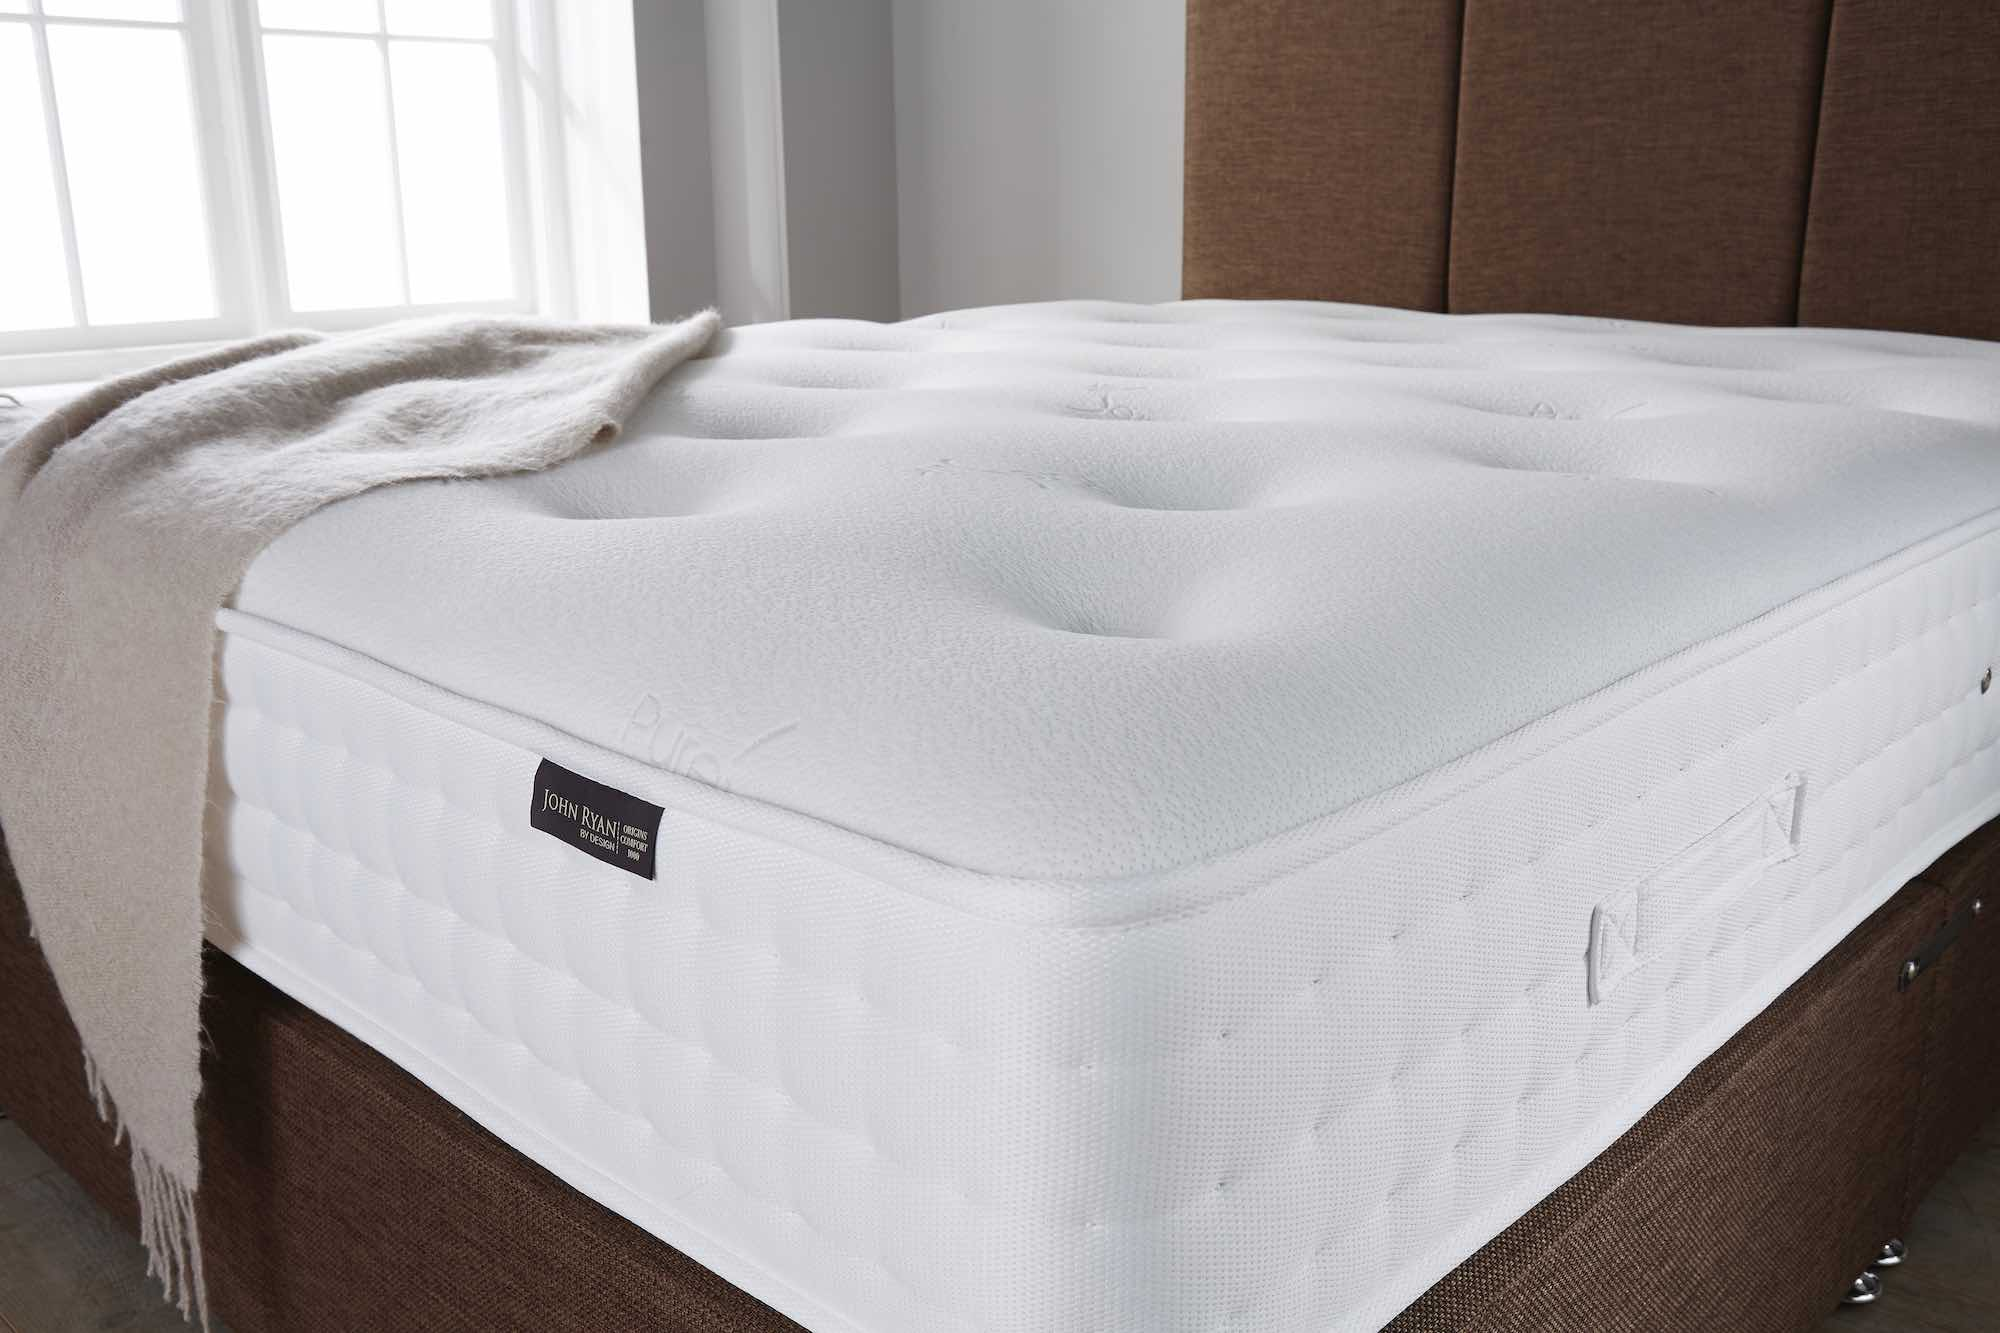 A mattress on a divan base